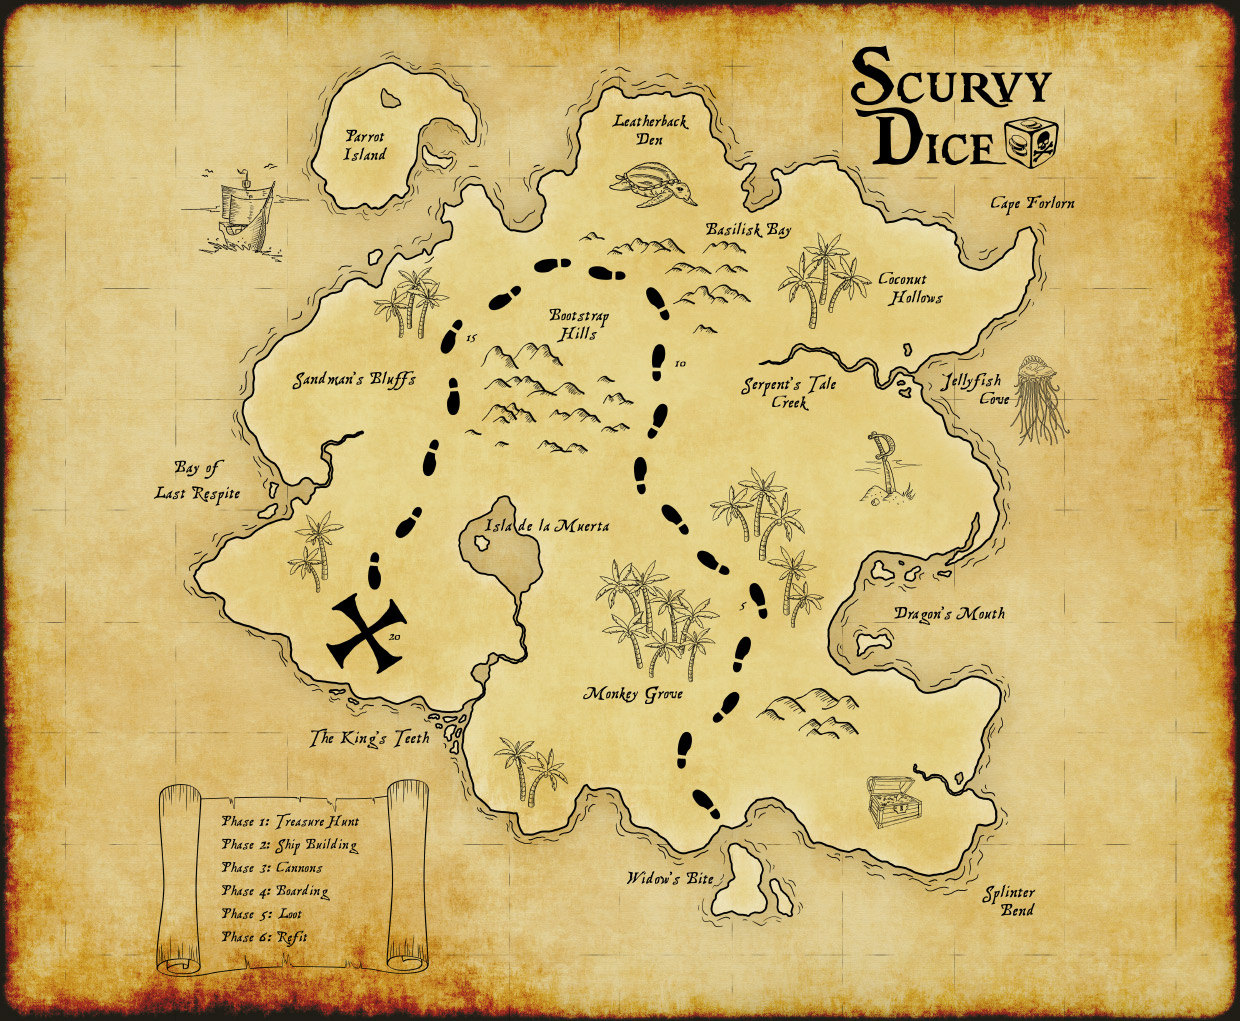 Scurvy Dice Game Map Early Draft